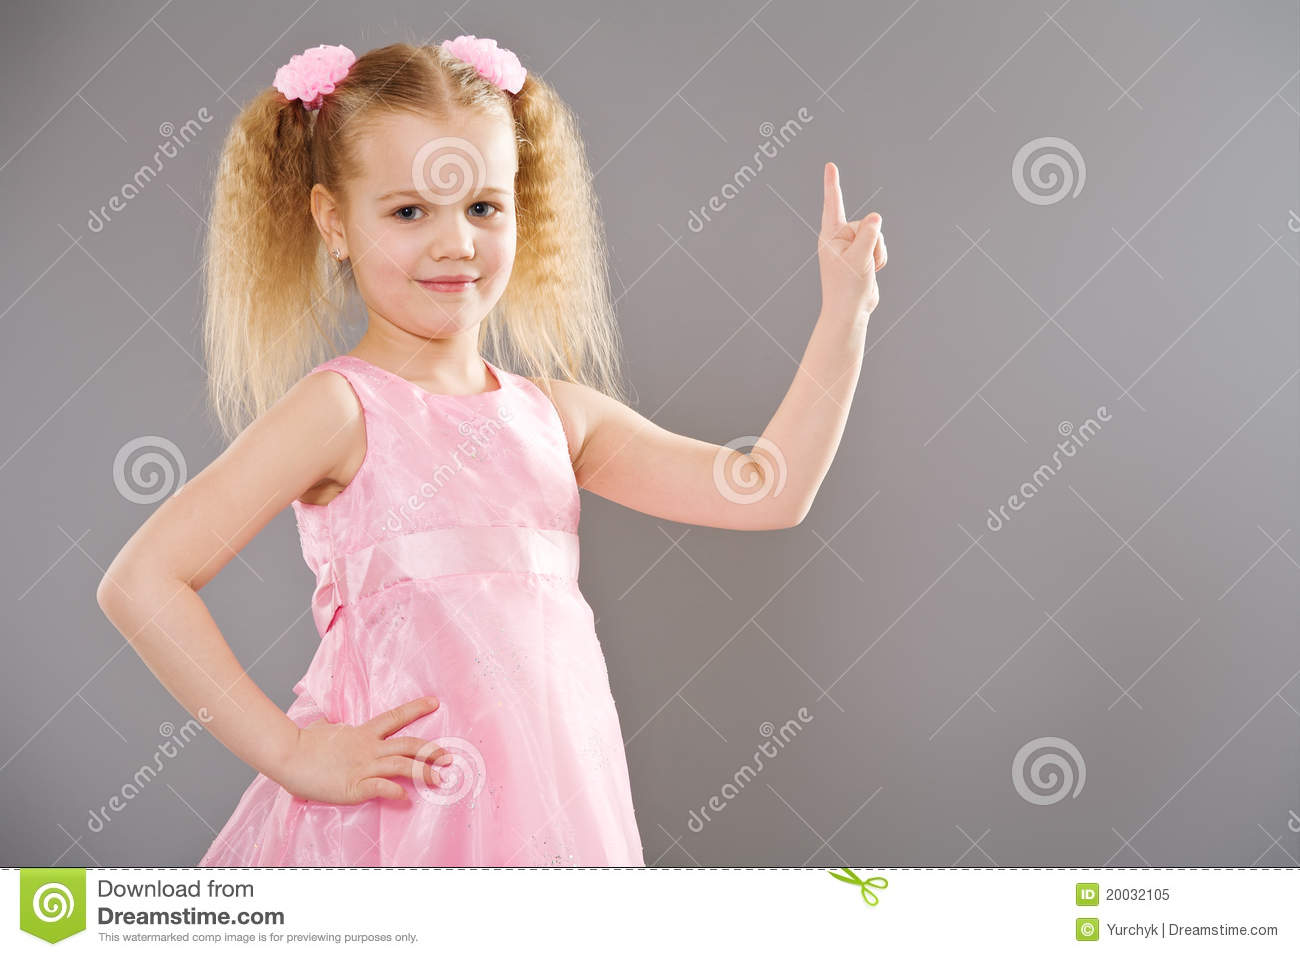 Cute Little Girl Pointing With Finger Stock Image - Image ... Cute Baby Pointing Finger